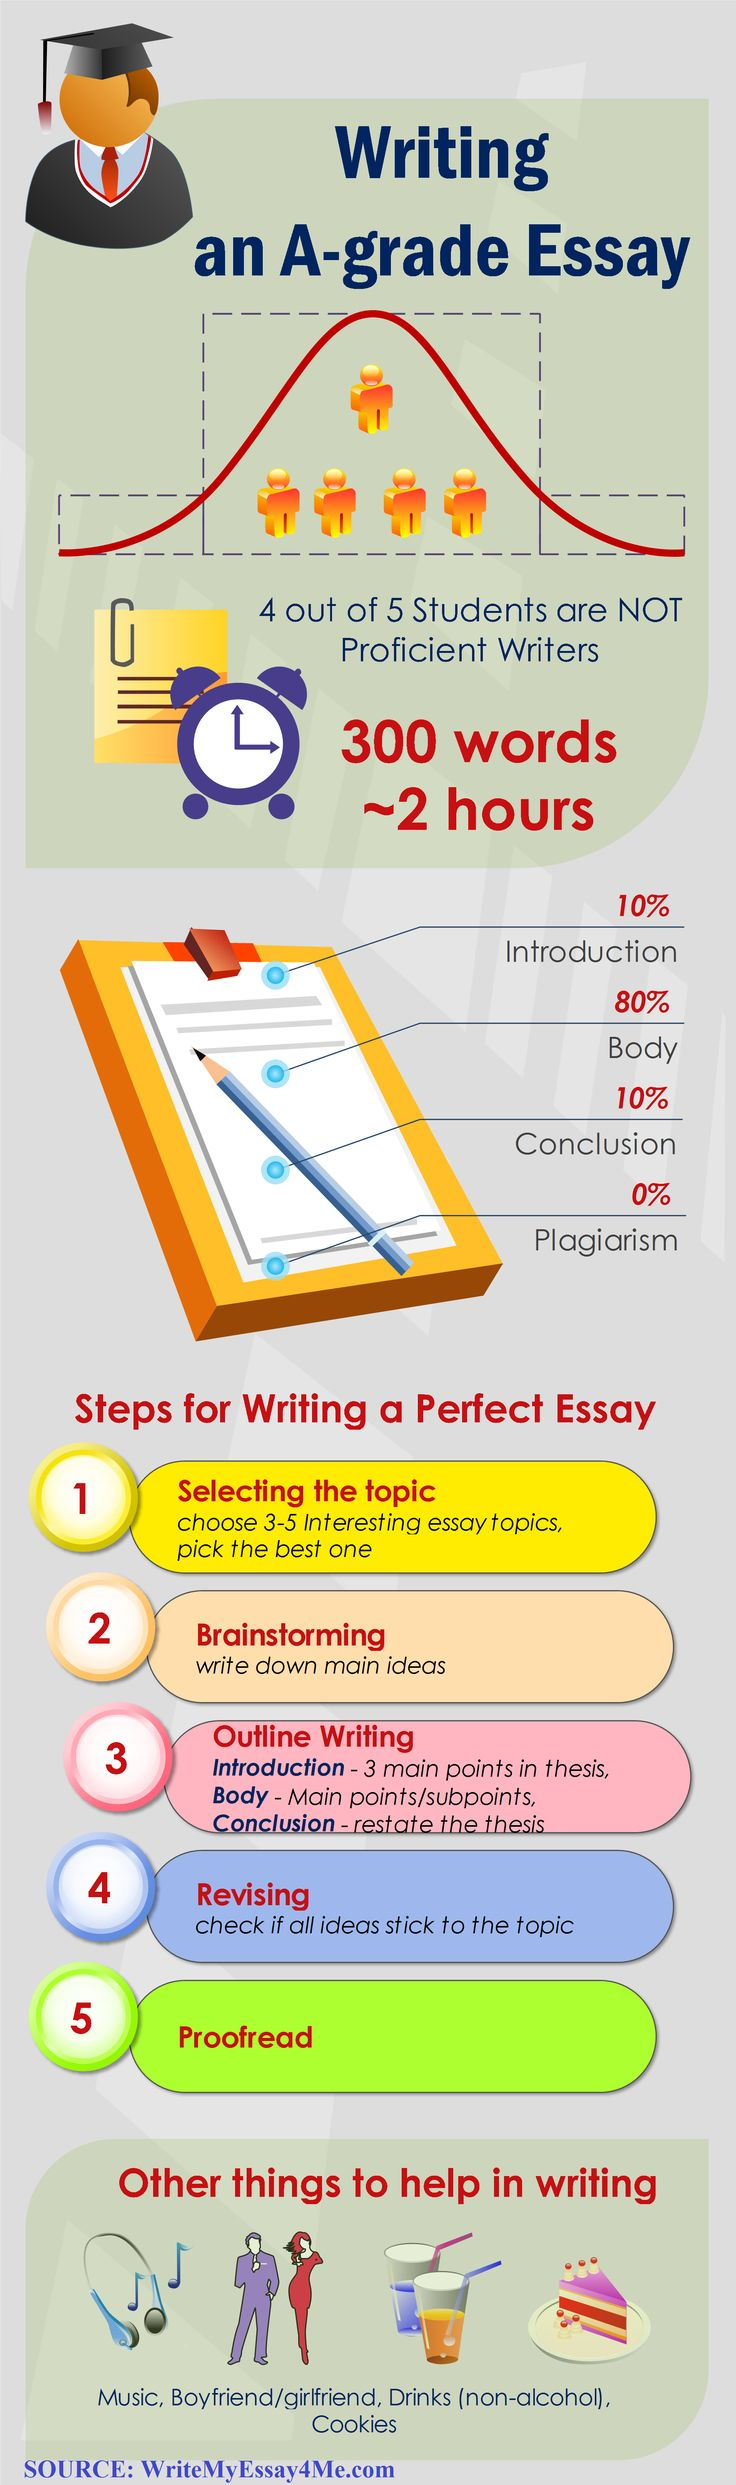 best ideas about essay writing tips essay tips educational technology infographics tips for writing paperscollege